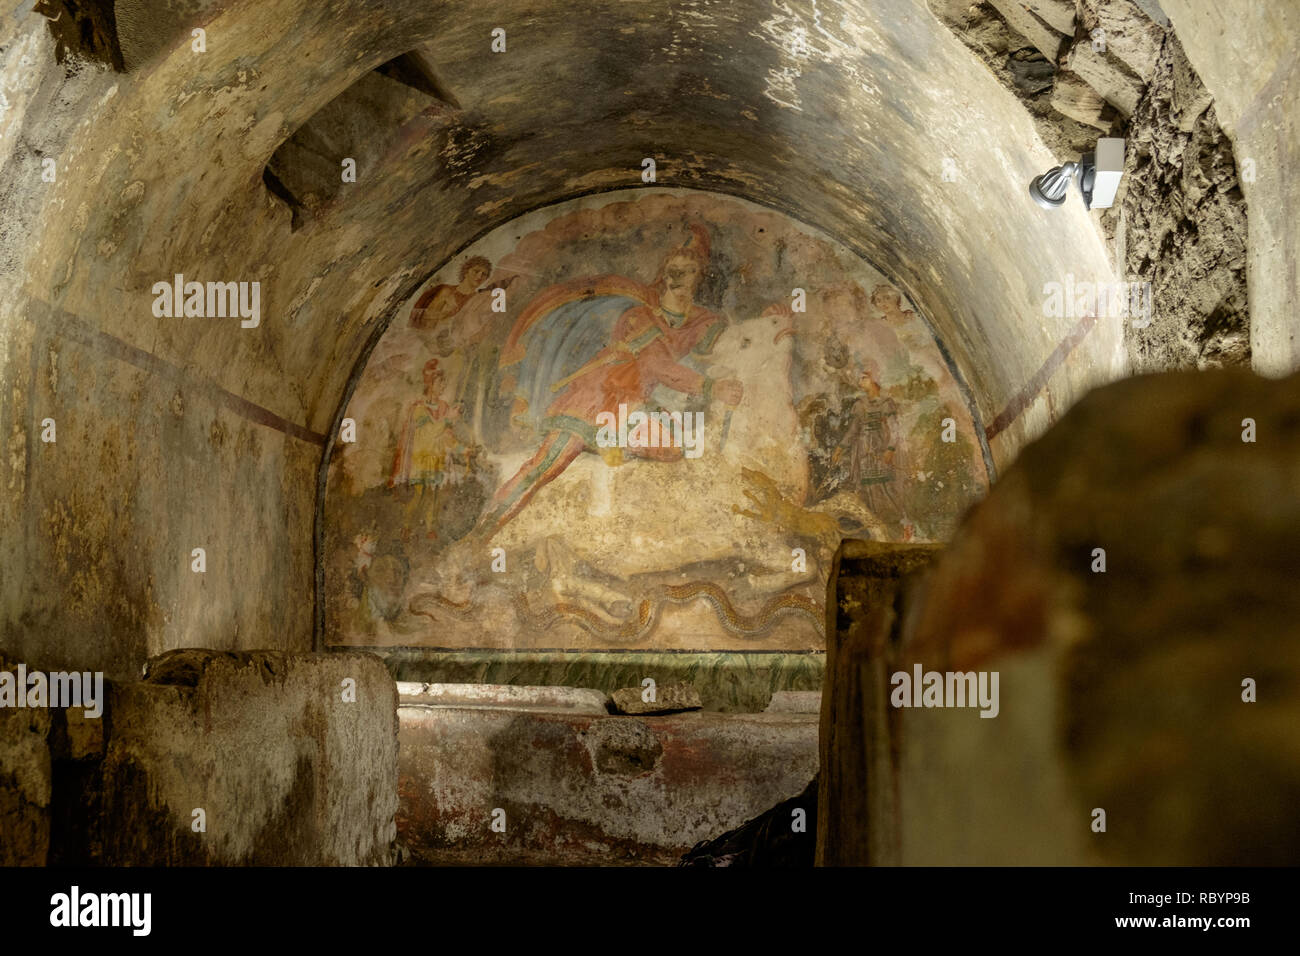 The Mithraeum of Santa Maria Capua Vetere is an example of the worshipping of the god Mithras, very popular in the Roman era. It still has a fresco. - Stock Image